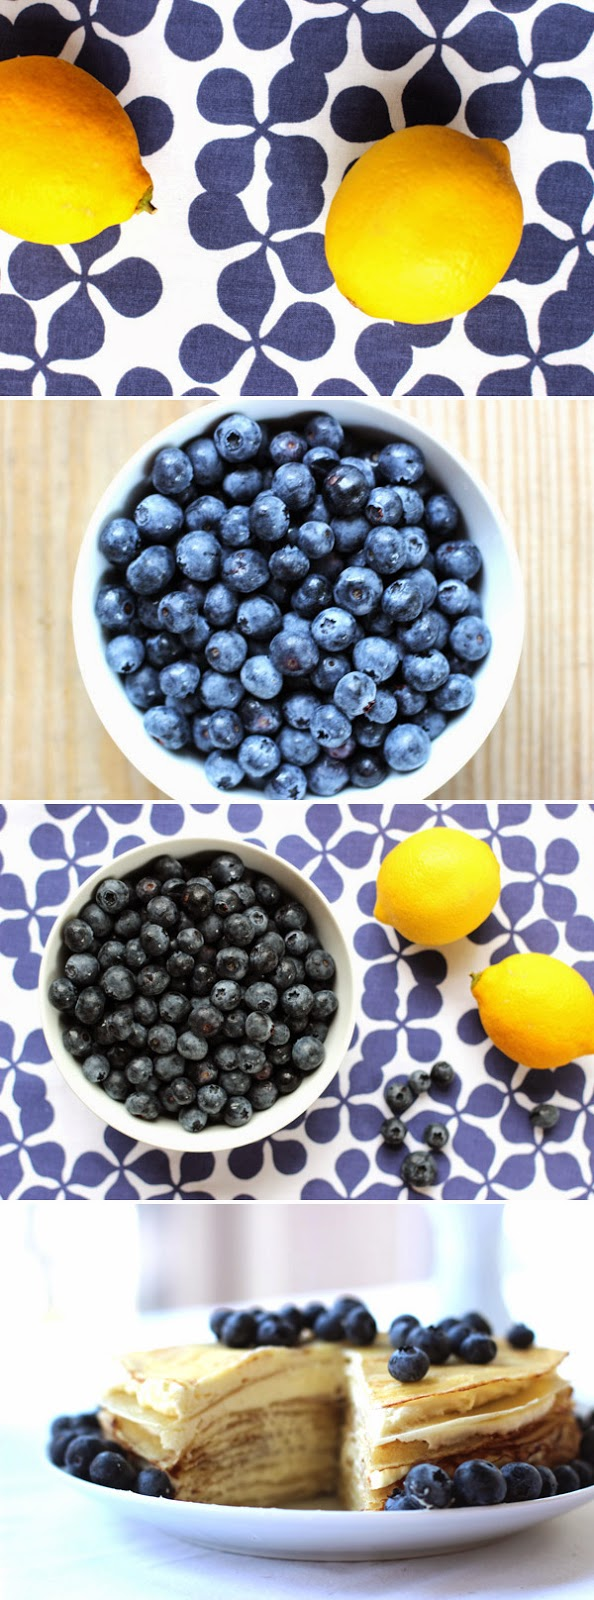 BLUEBERRIES-AND-LEMON-SET.jpg